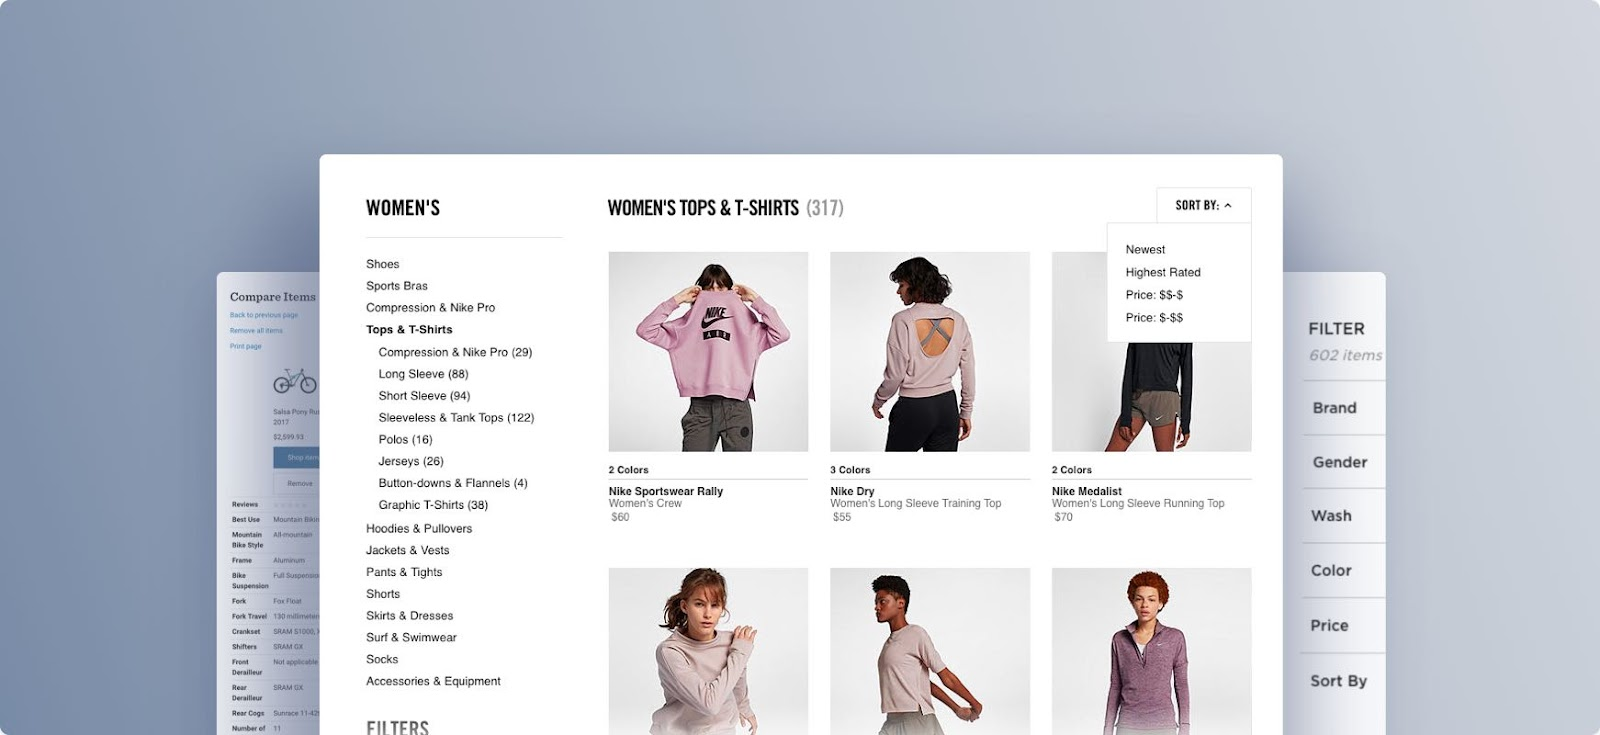 Example of an ecommerce store with a neat taxonomy structure and clear product information